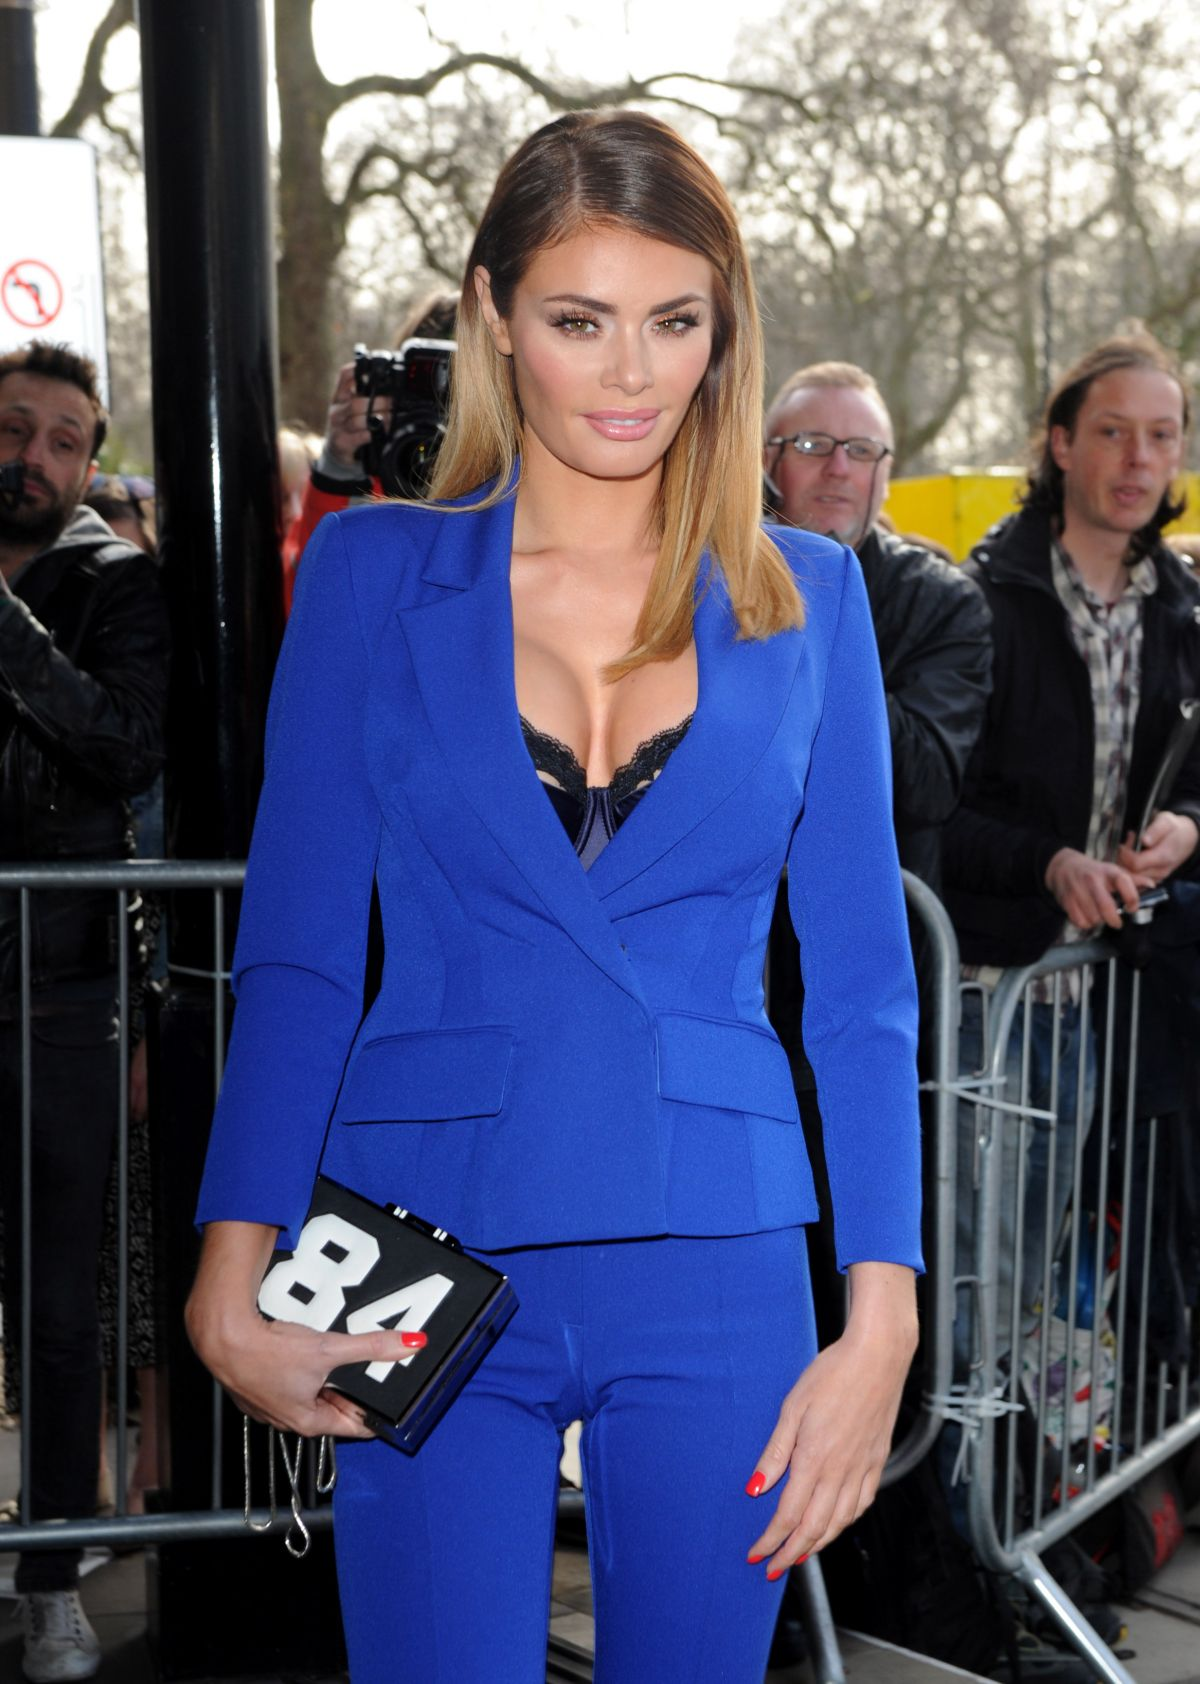 CHLOE SIMS at TRIC Awards 2015 in London